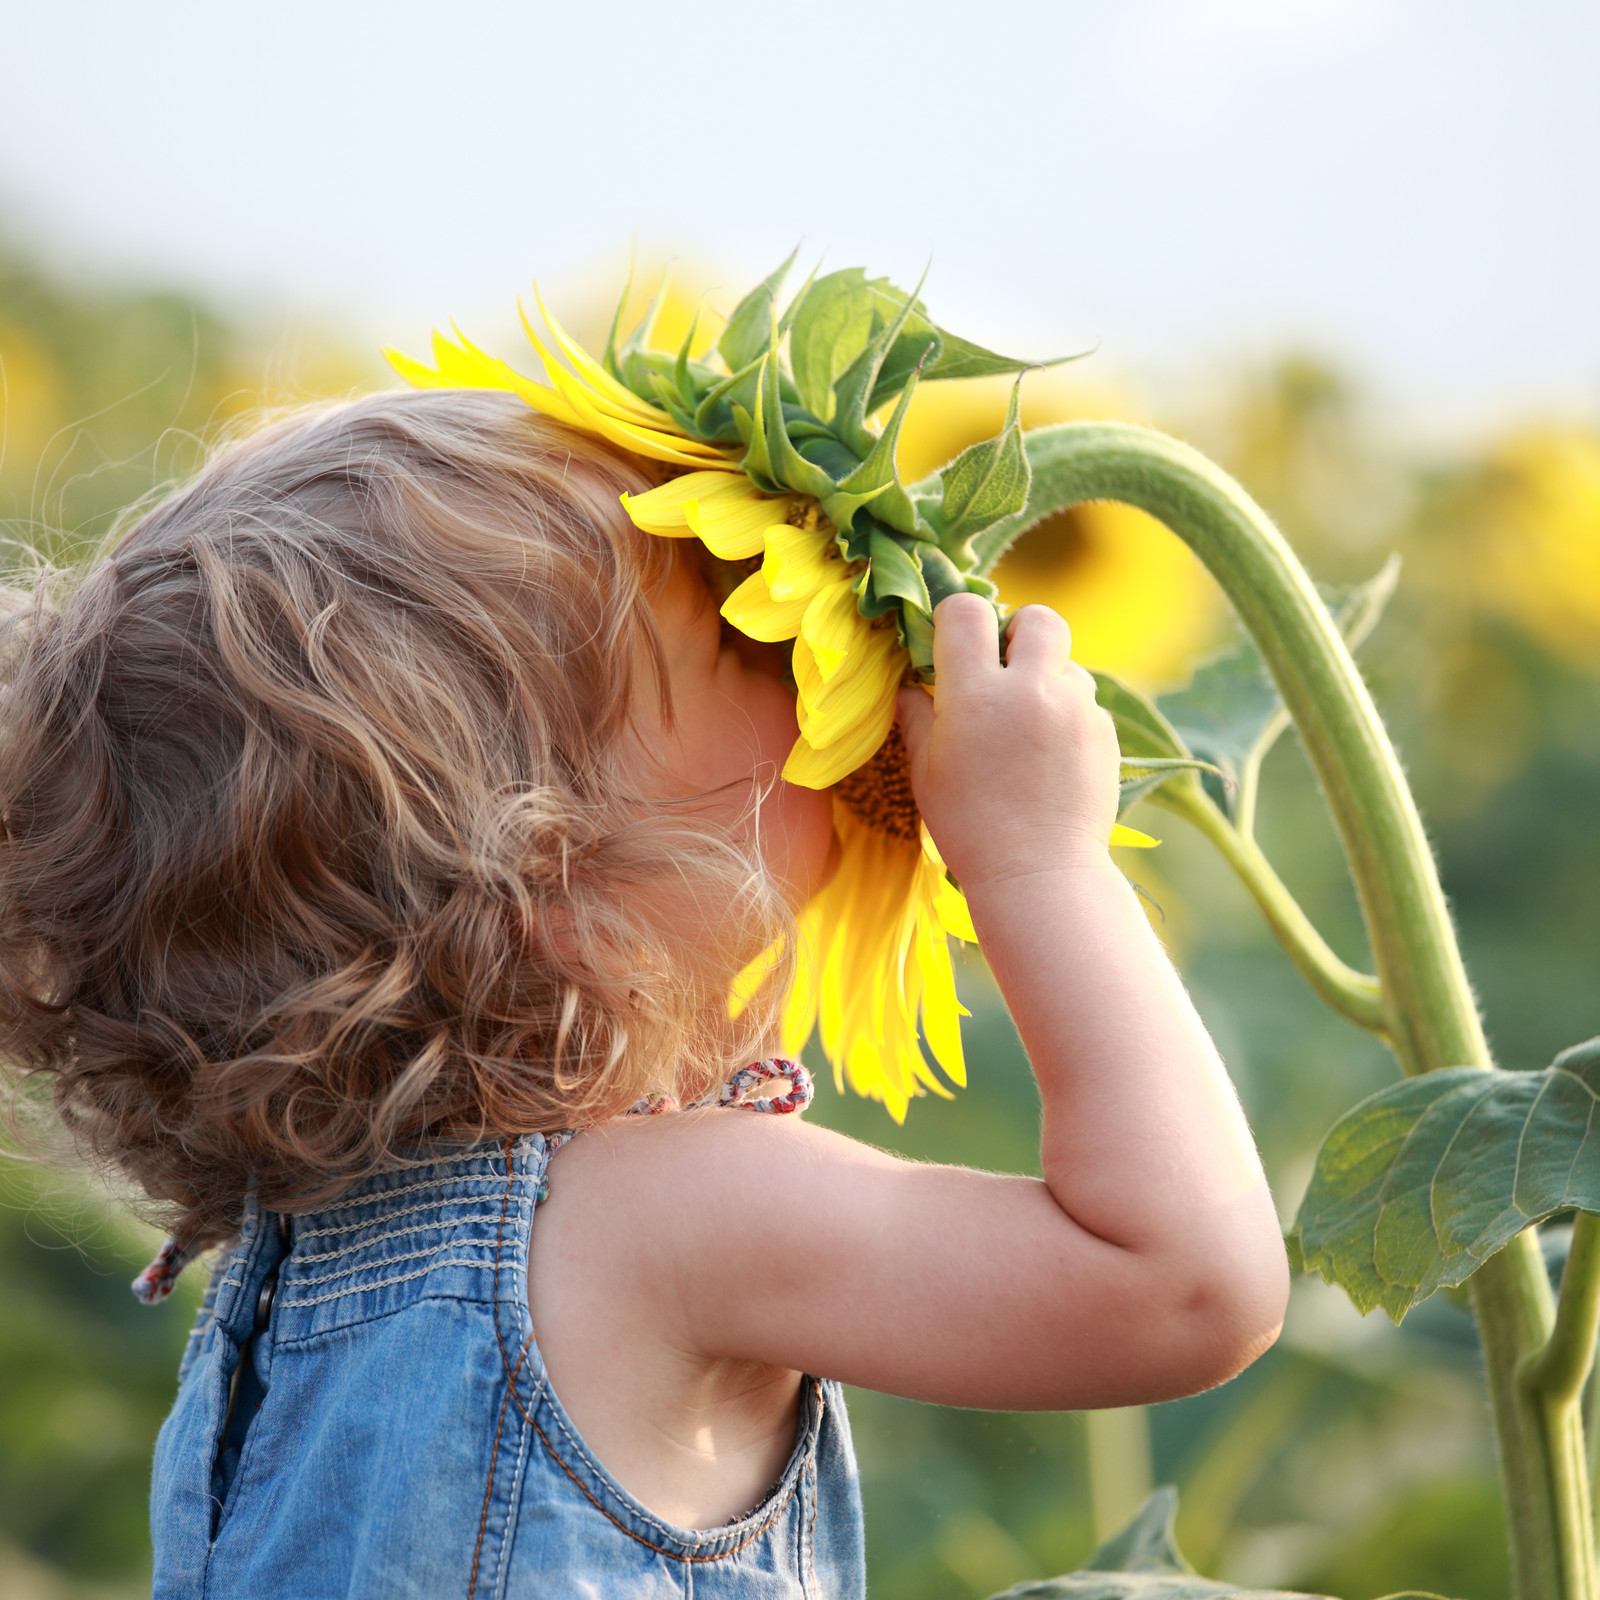 Child embracing flower